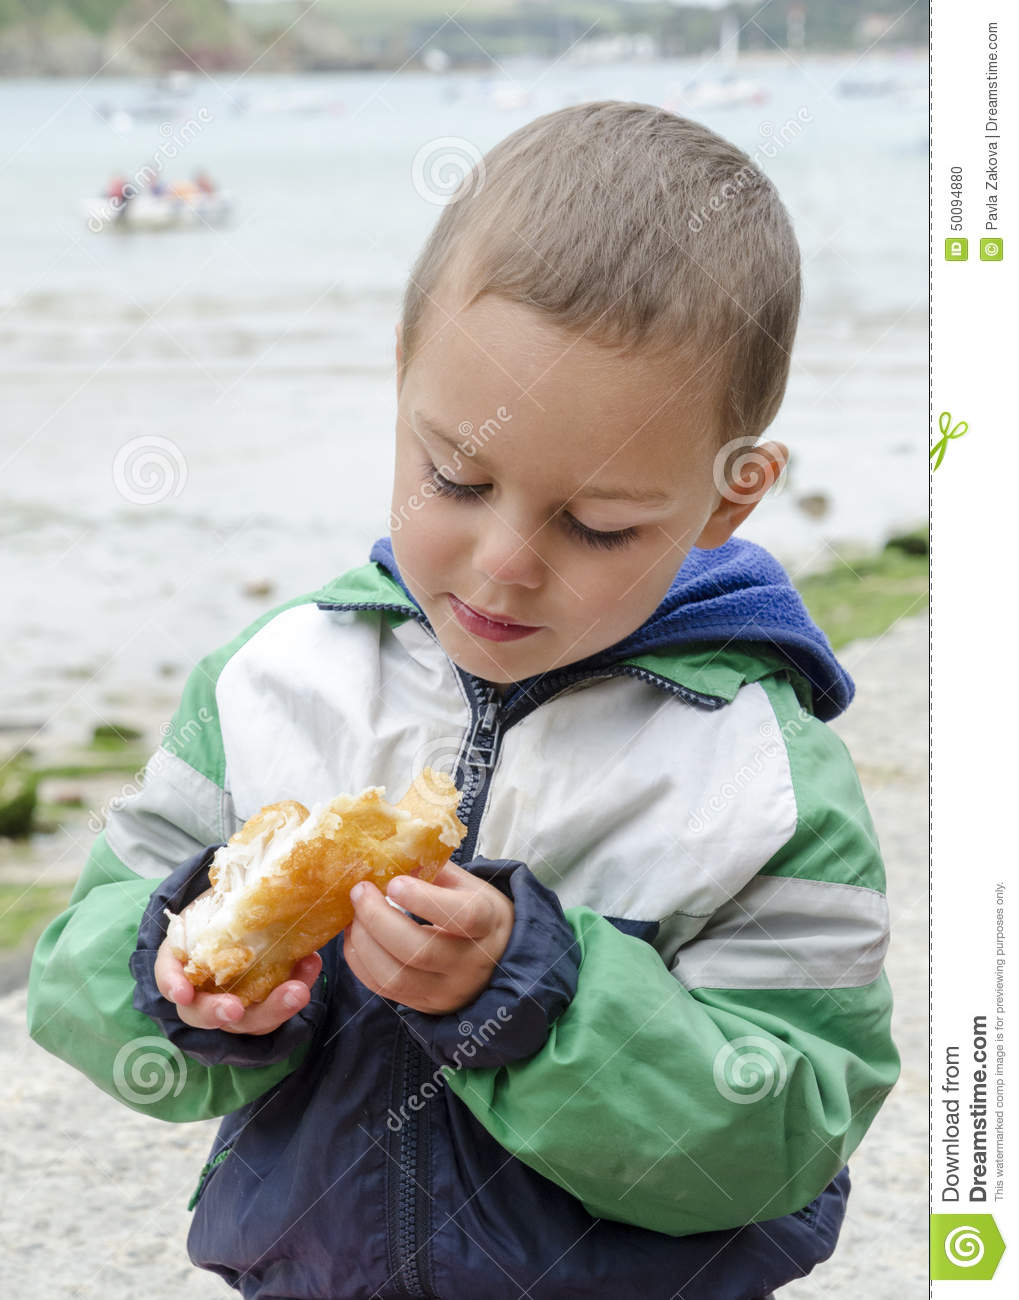 Child eating fish outdoors stock photo image 50094880 for Dreaming of eating fish